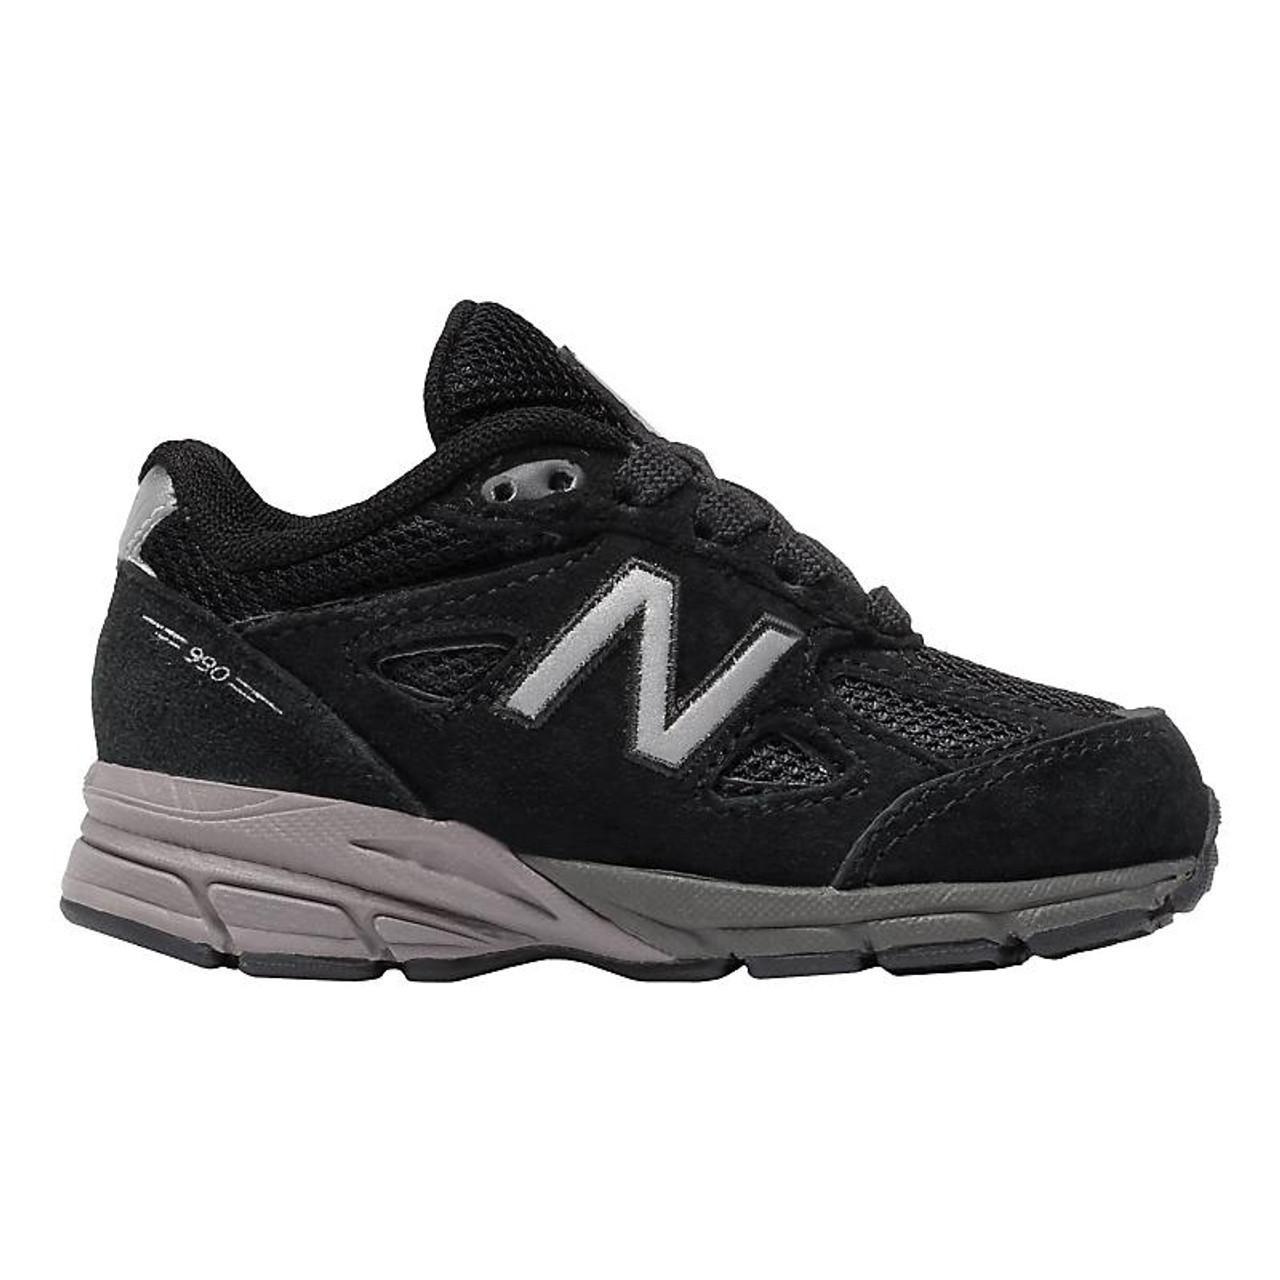 buy popular d822b 5001f Kids New Balance 990v4